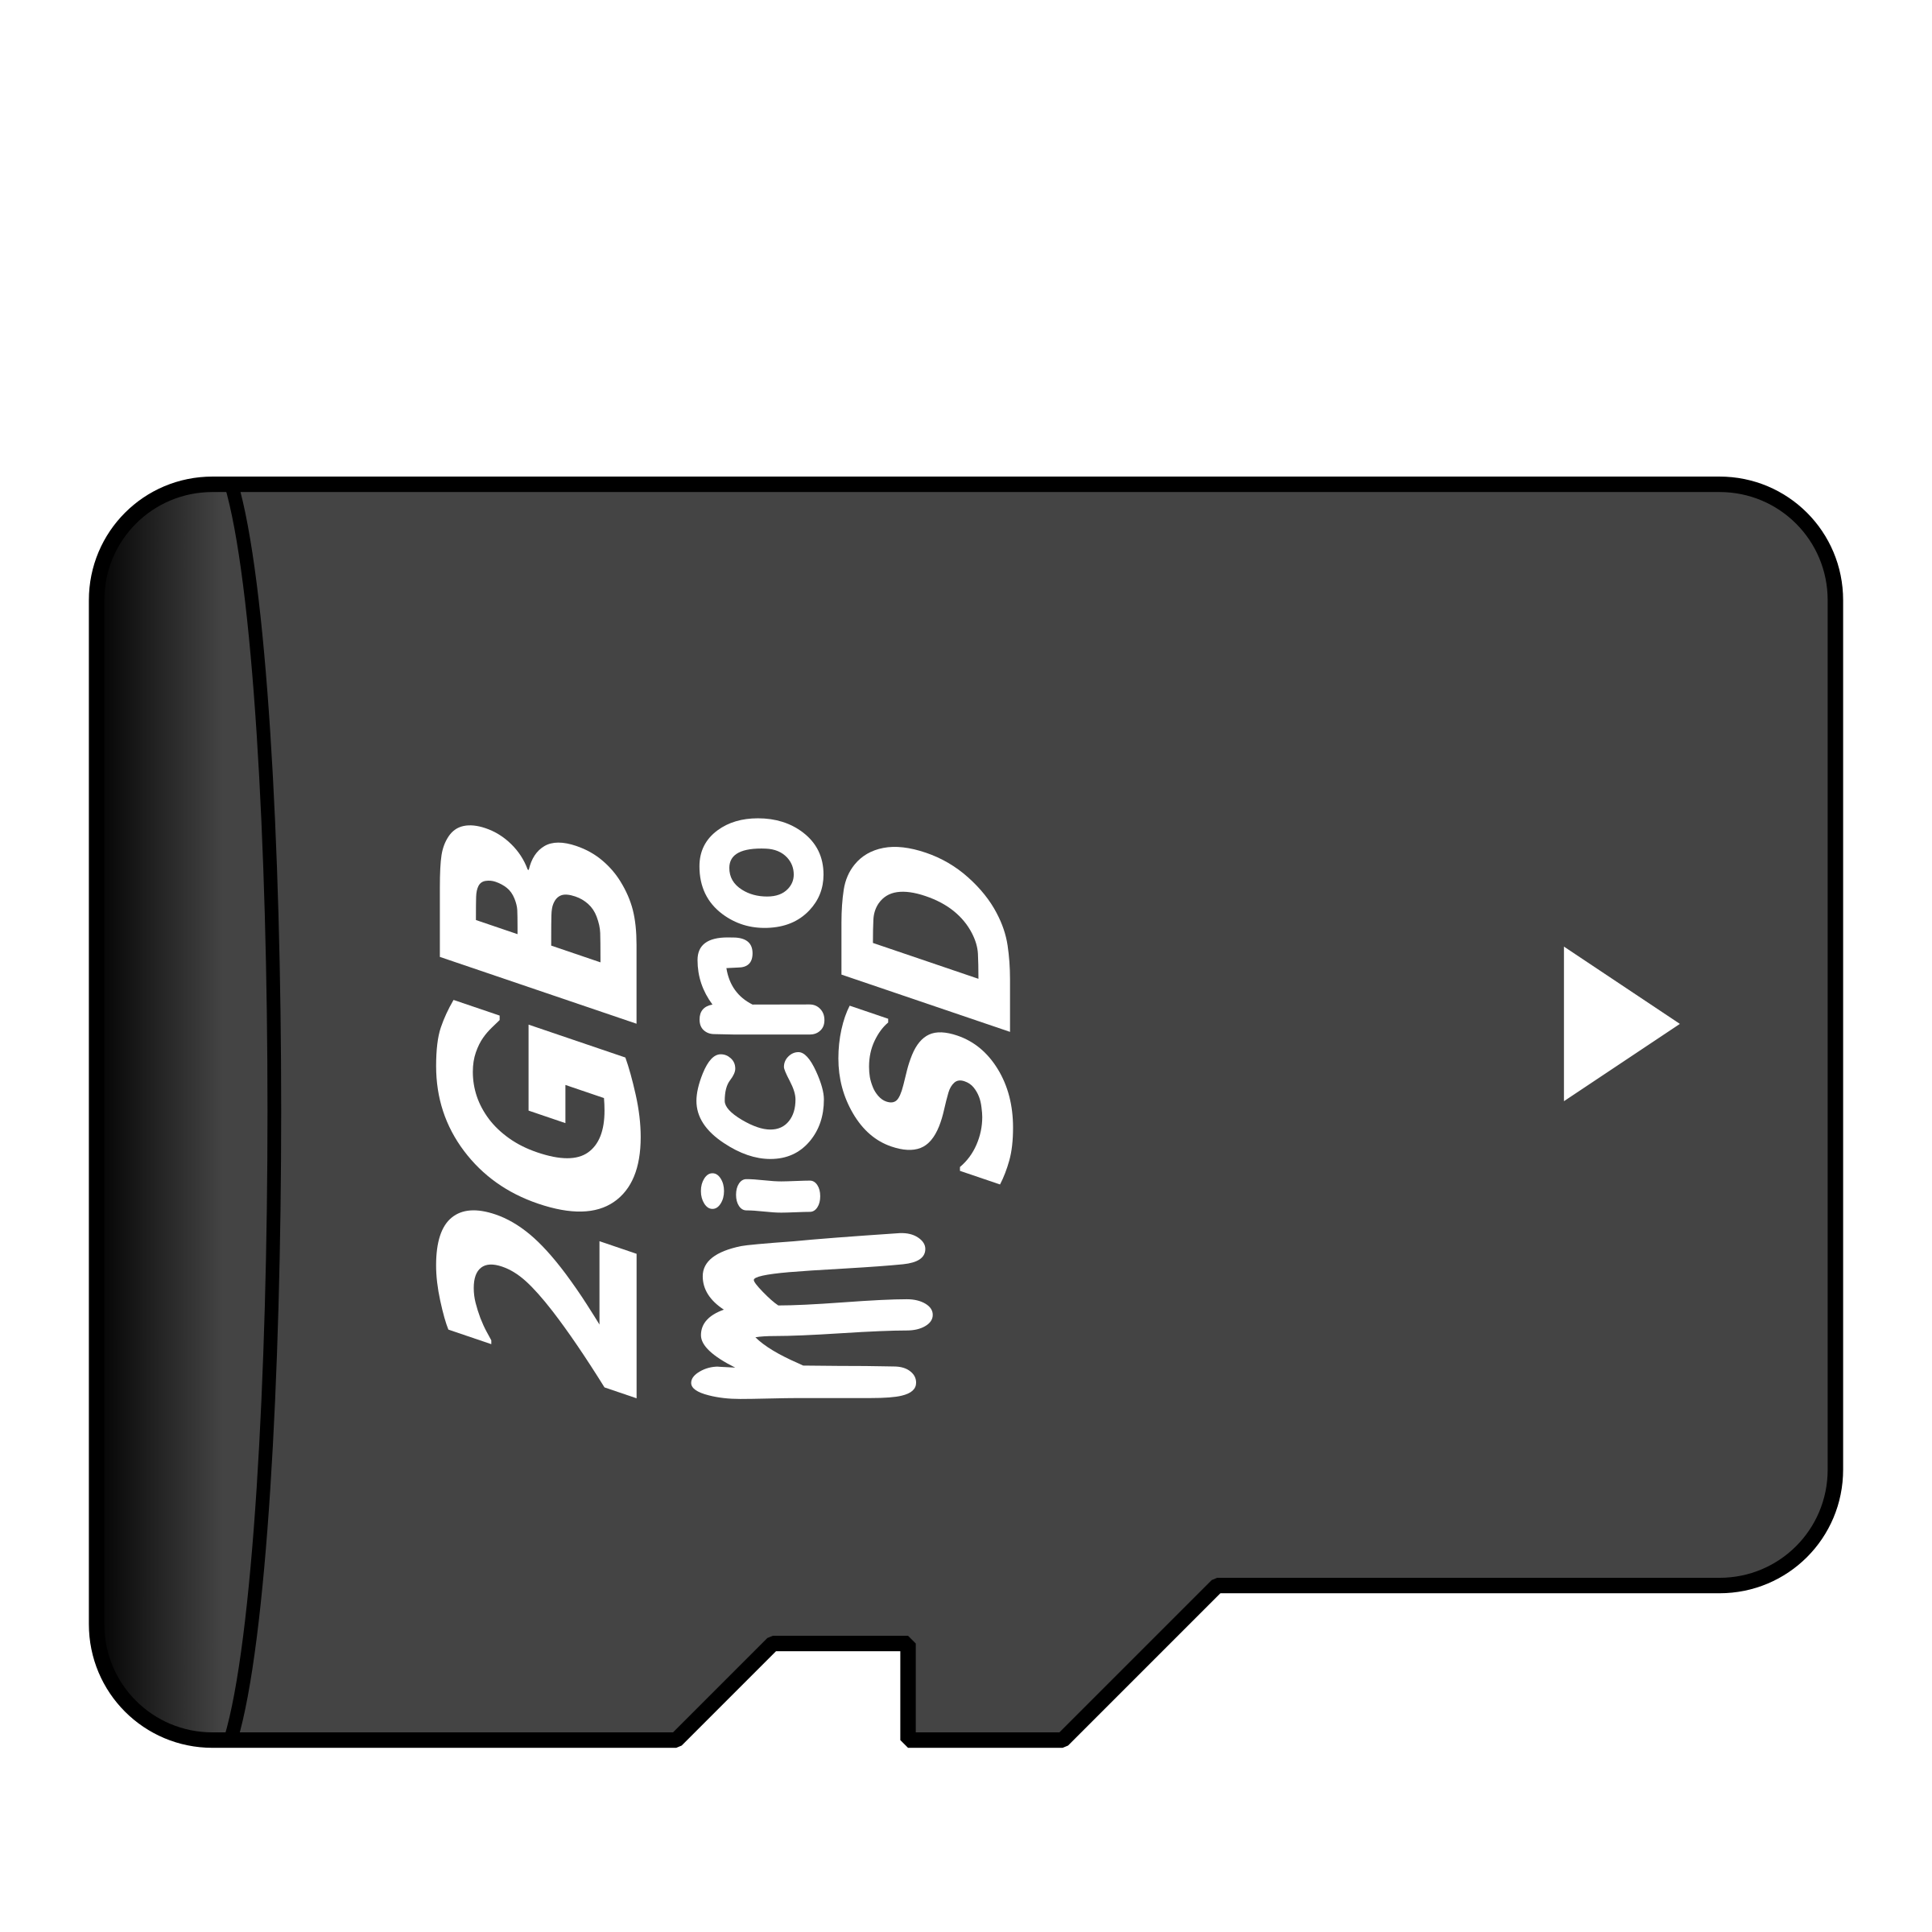 microSD Card by DogRat